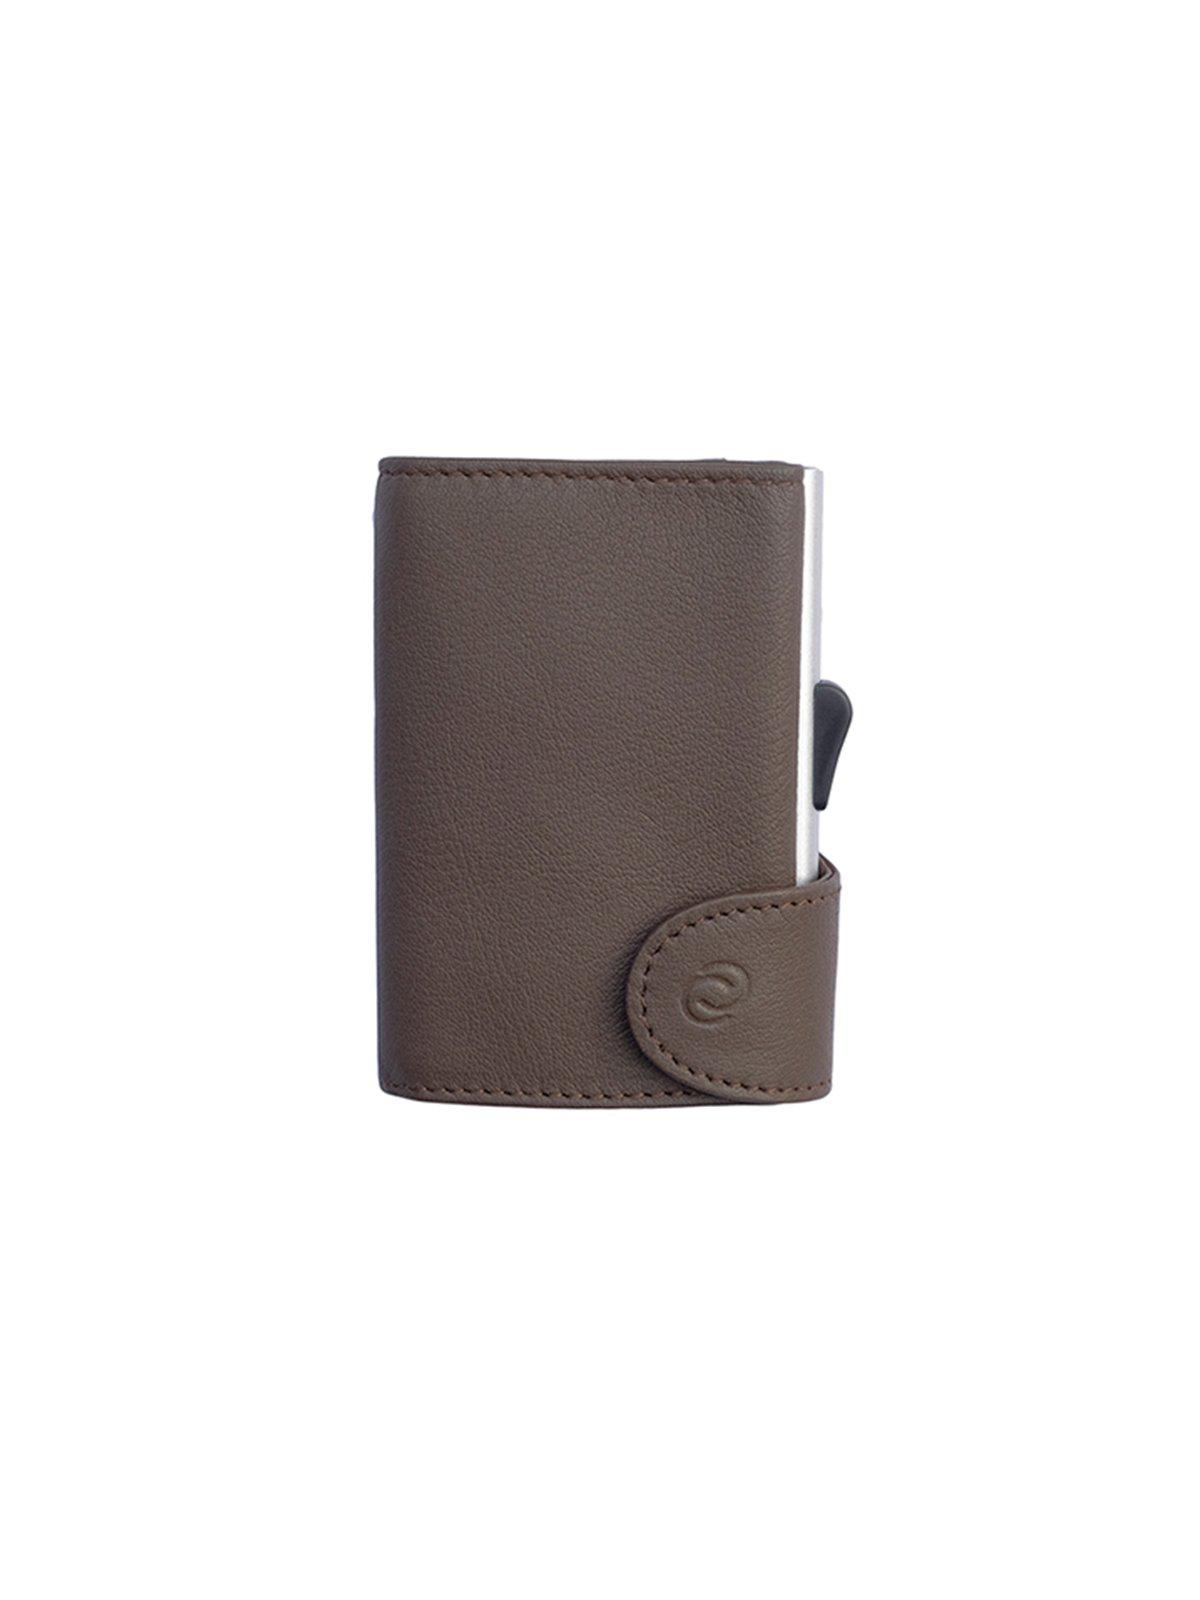 C-Secure Italian Leather RFID Wallet Castagno - MORE by Morello Indonesia 43dc1a4d4d